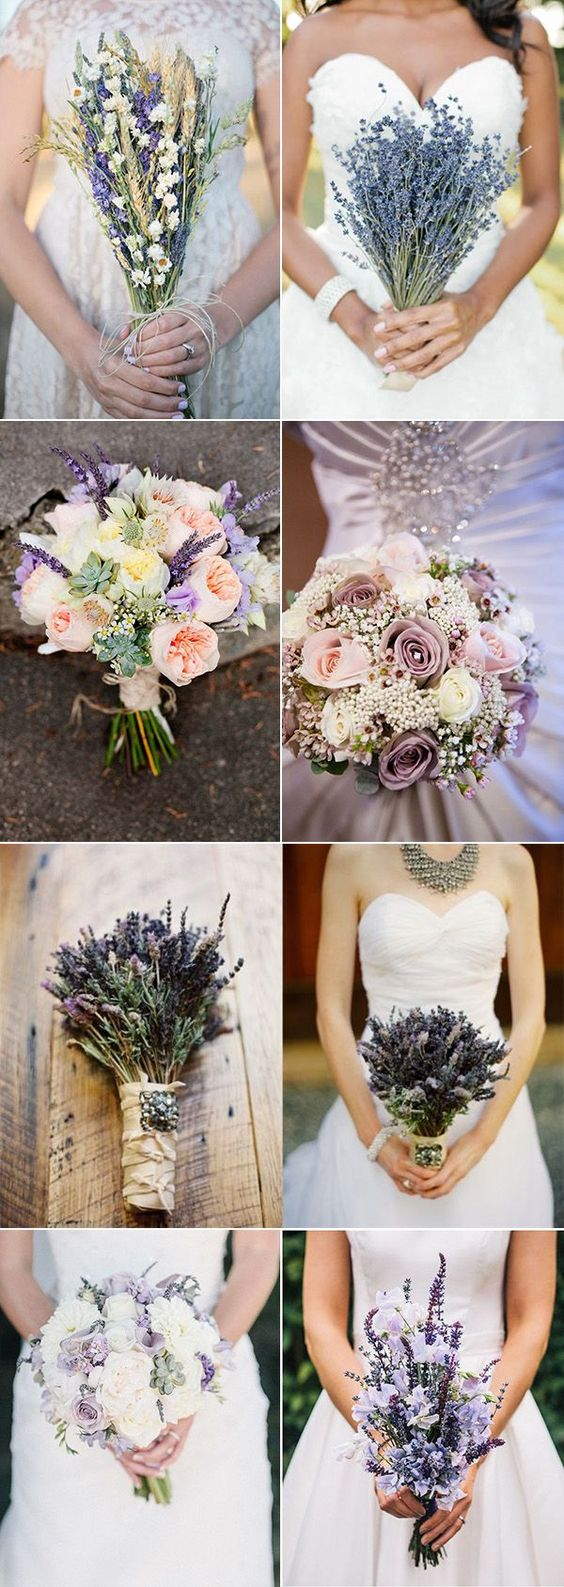 lavender inspired wedding bridal bouquets ideas 2015